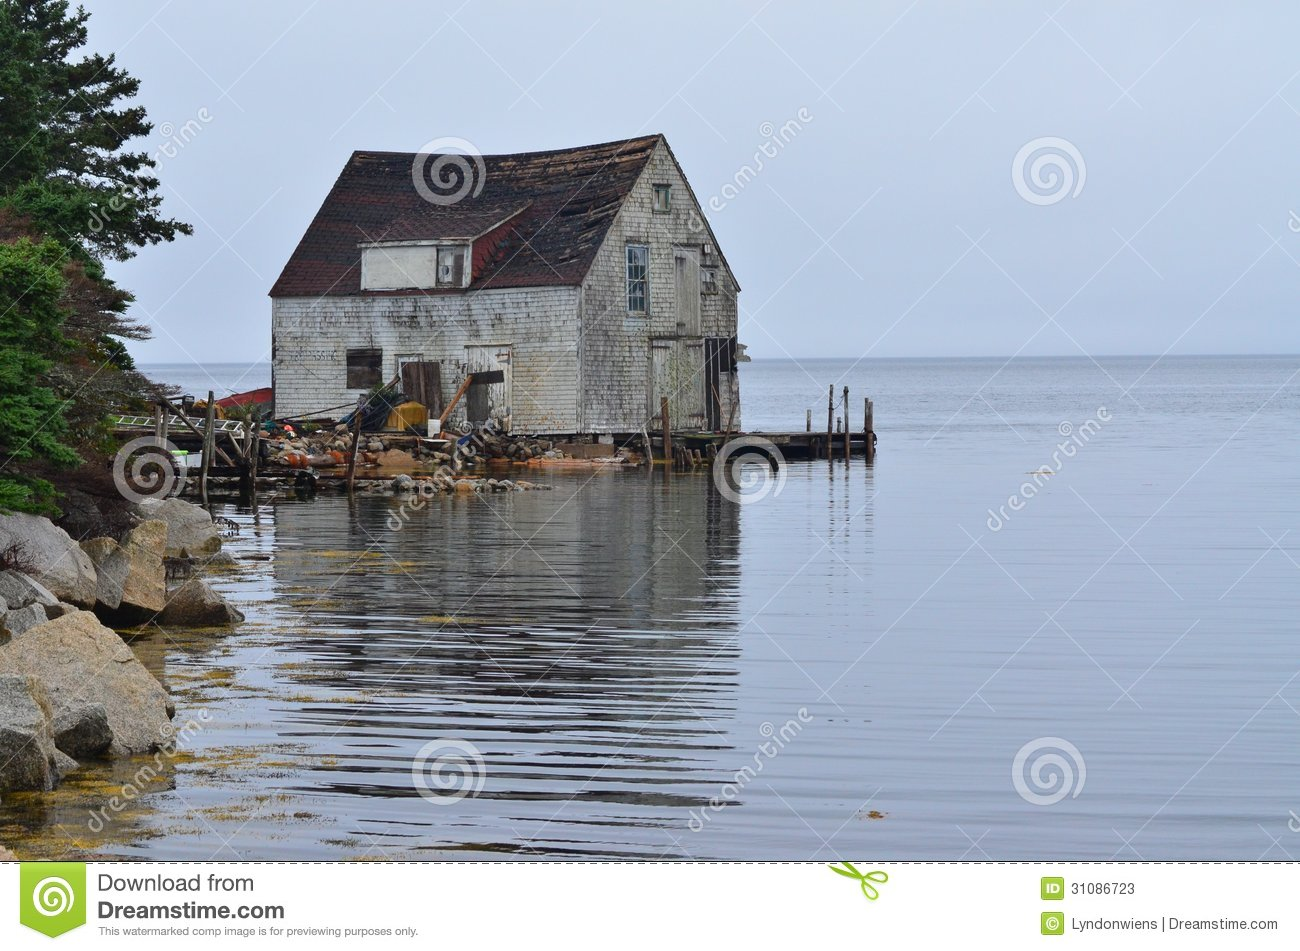 The old fishing shack stock photos image 31086723 for Fish shack near me